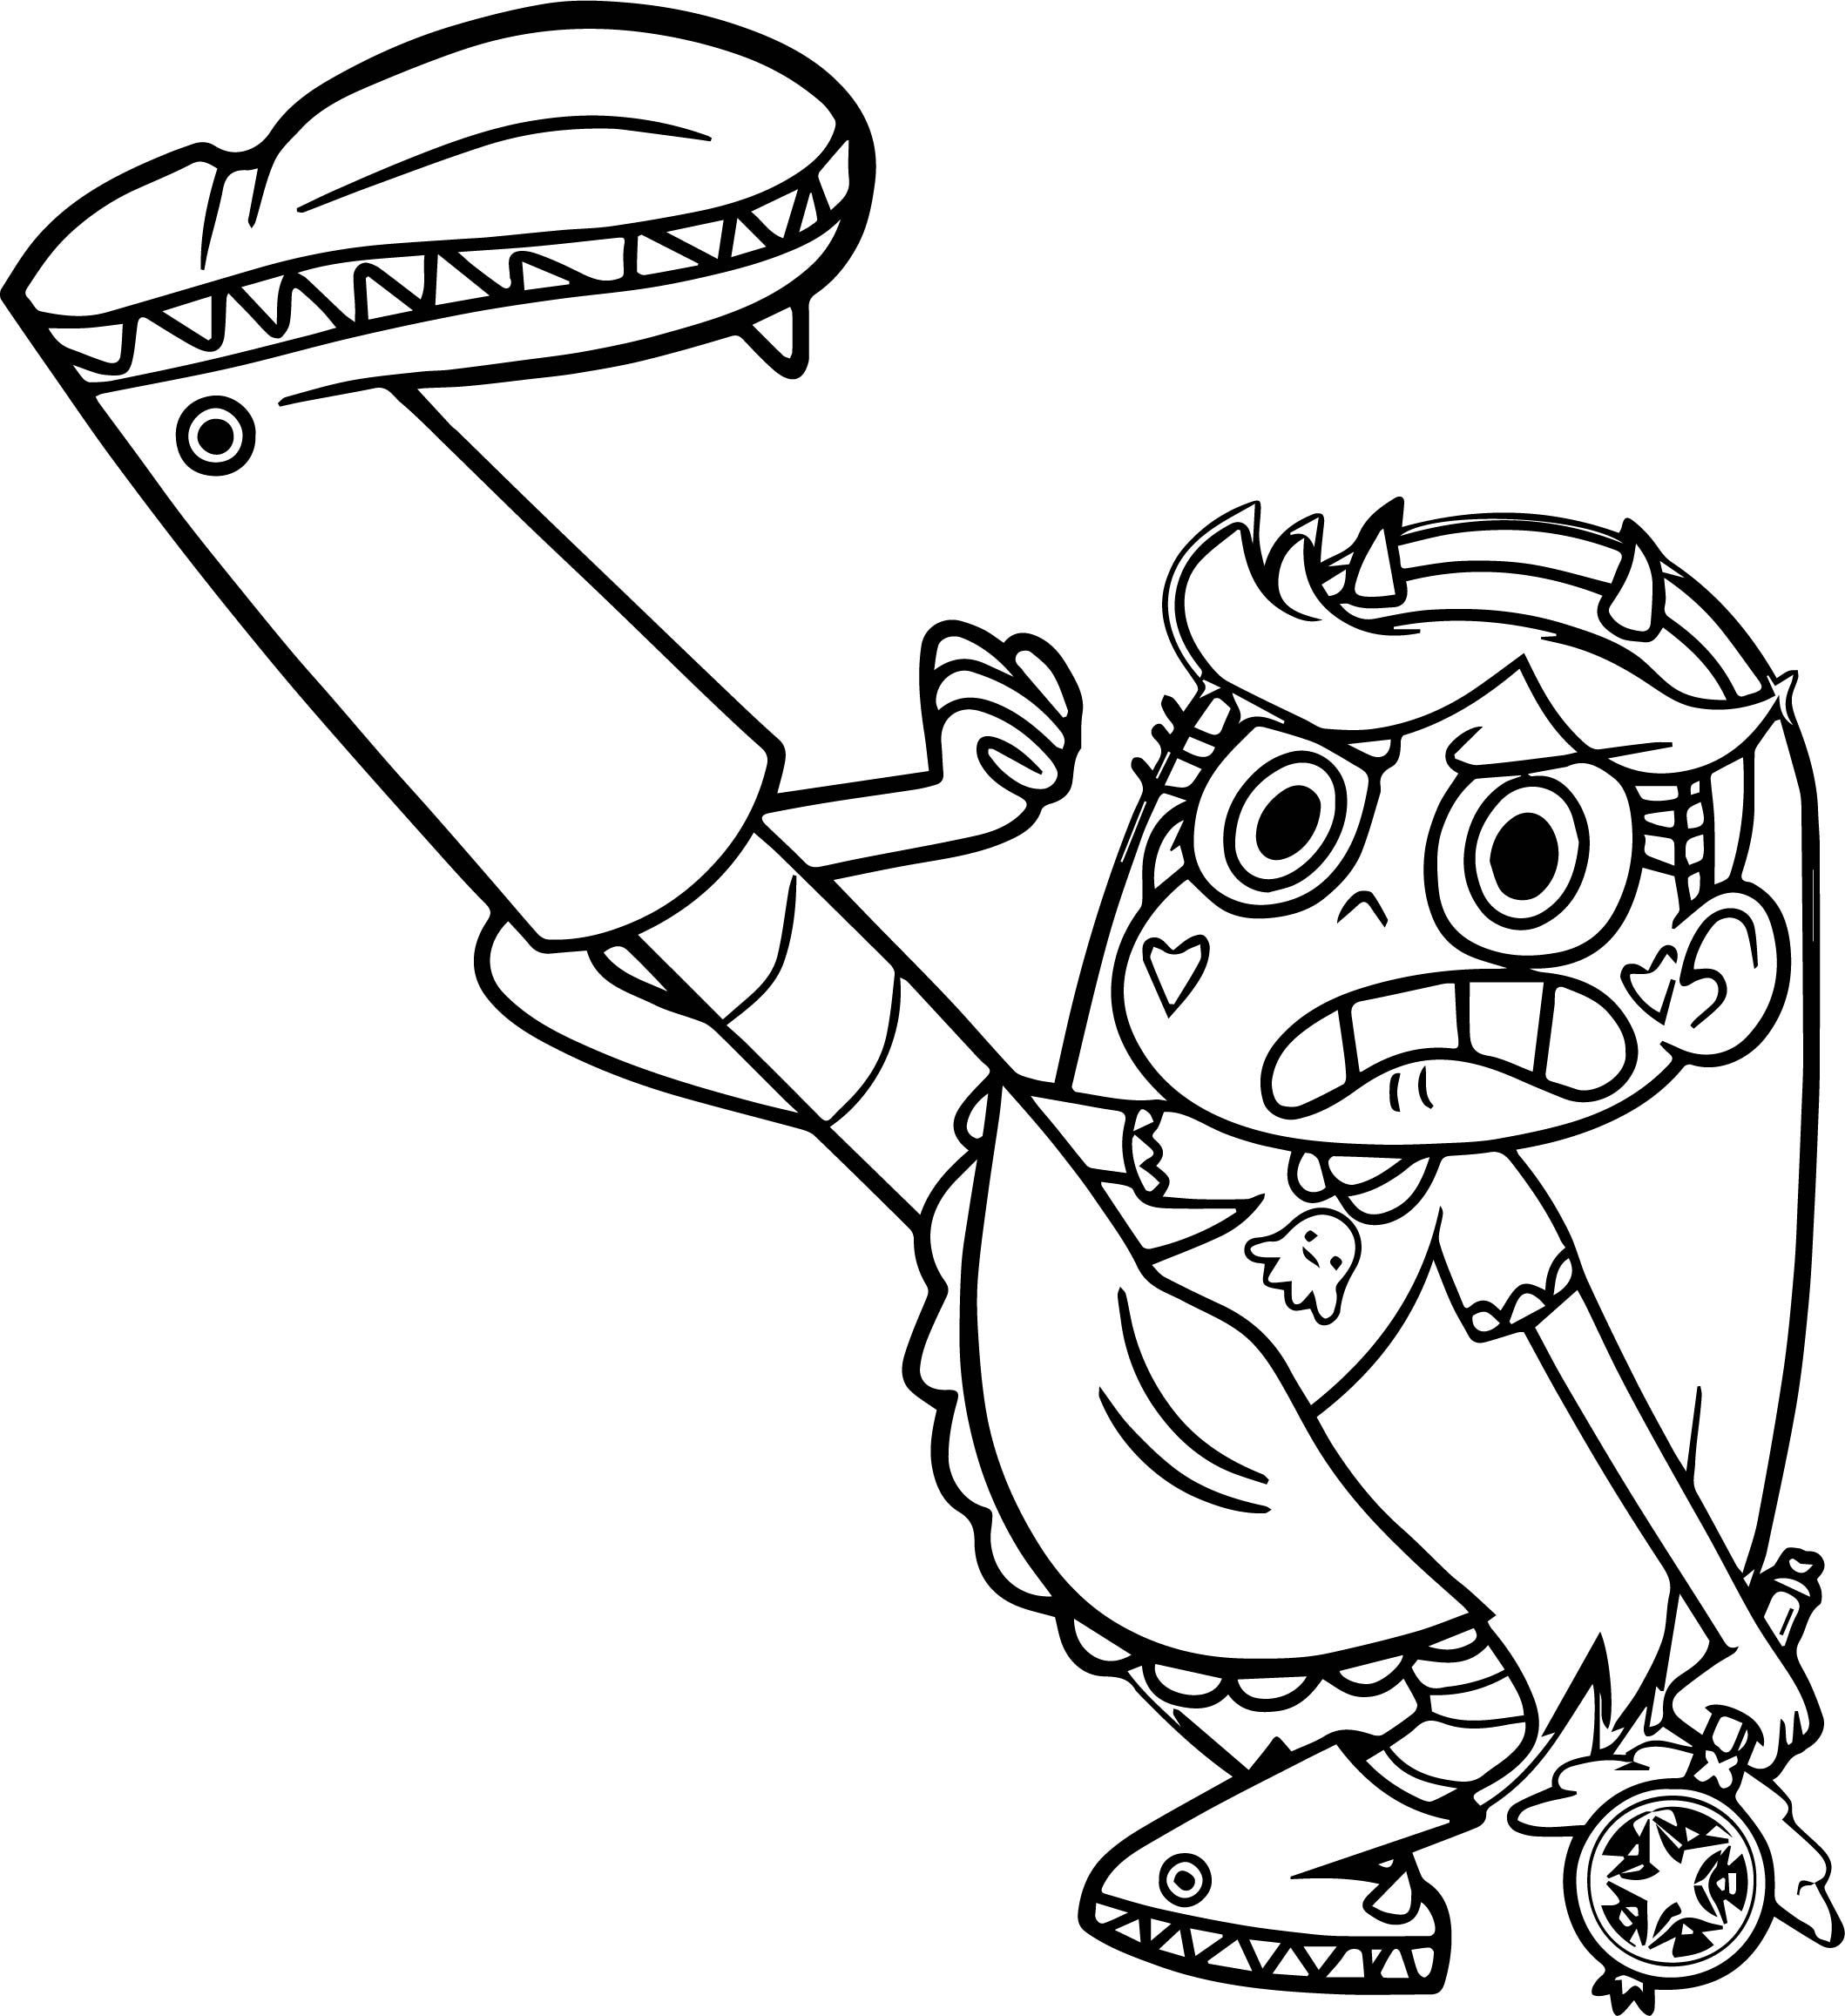 Star Vs The Forces Of Evil Kick Butterfly Coloring Page